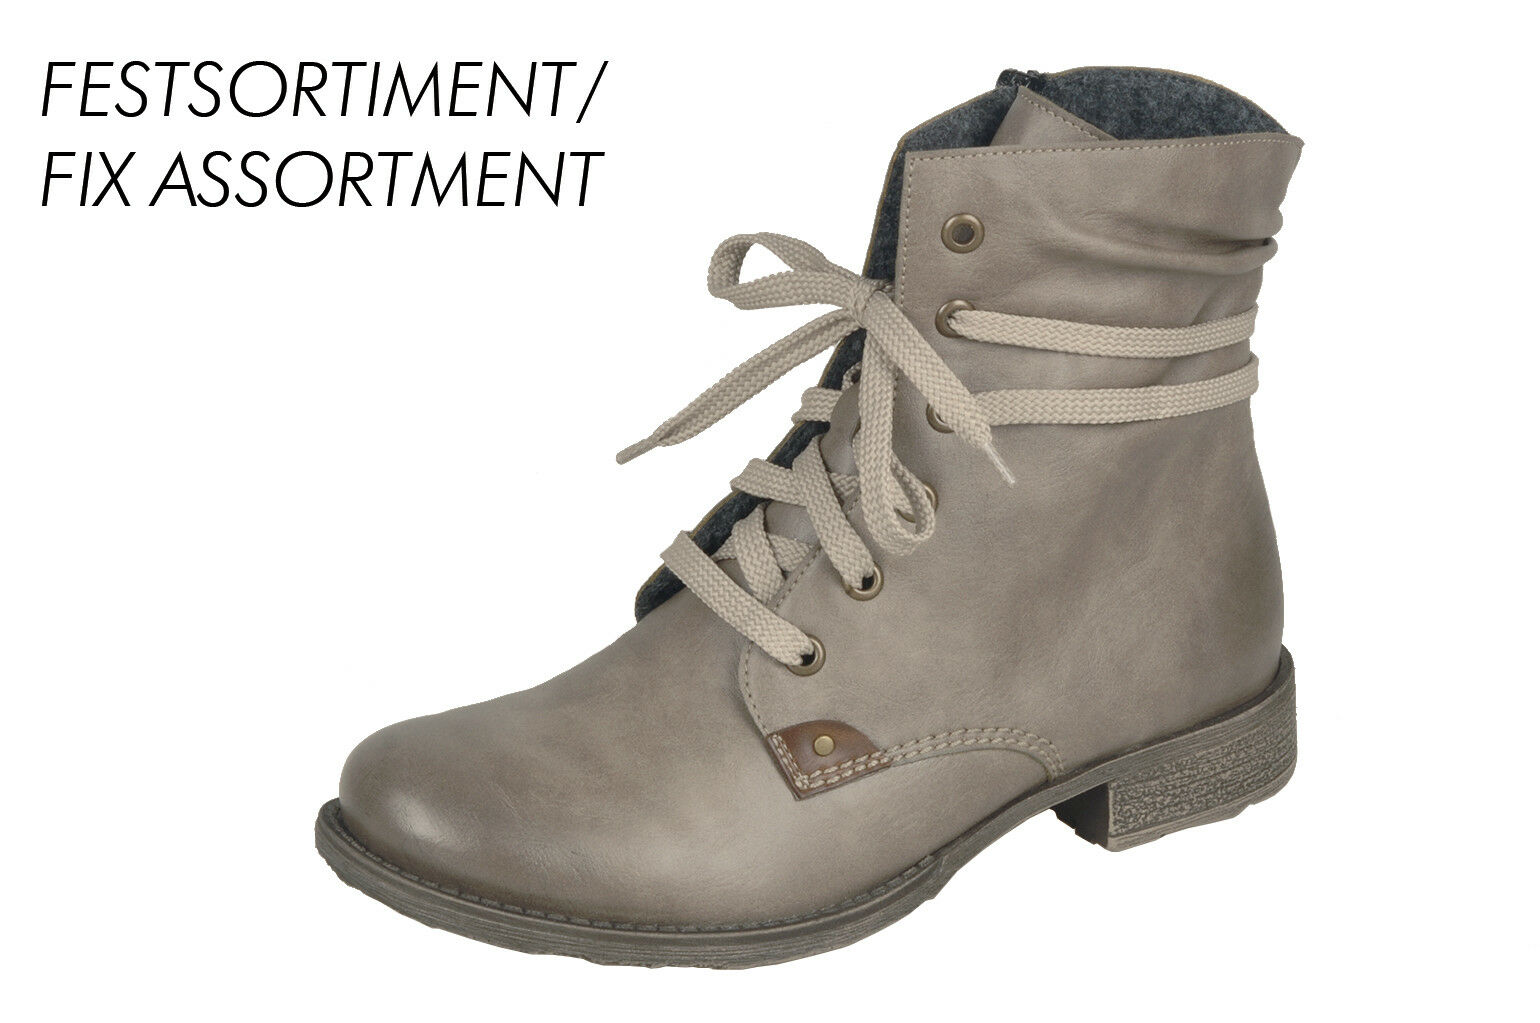 Rieker 70829 Women's Lace-Up Boots Boots Ankle Boot Boots Beige  Grey NEW